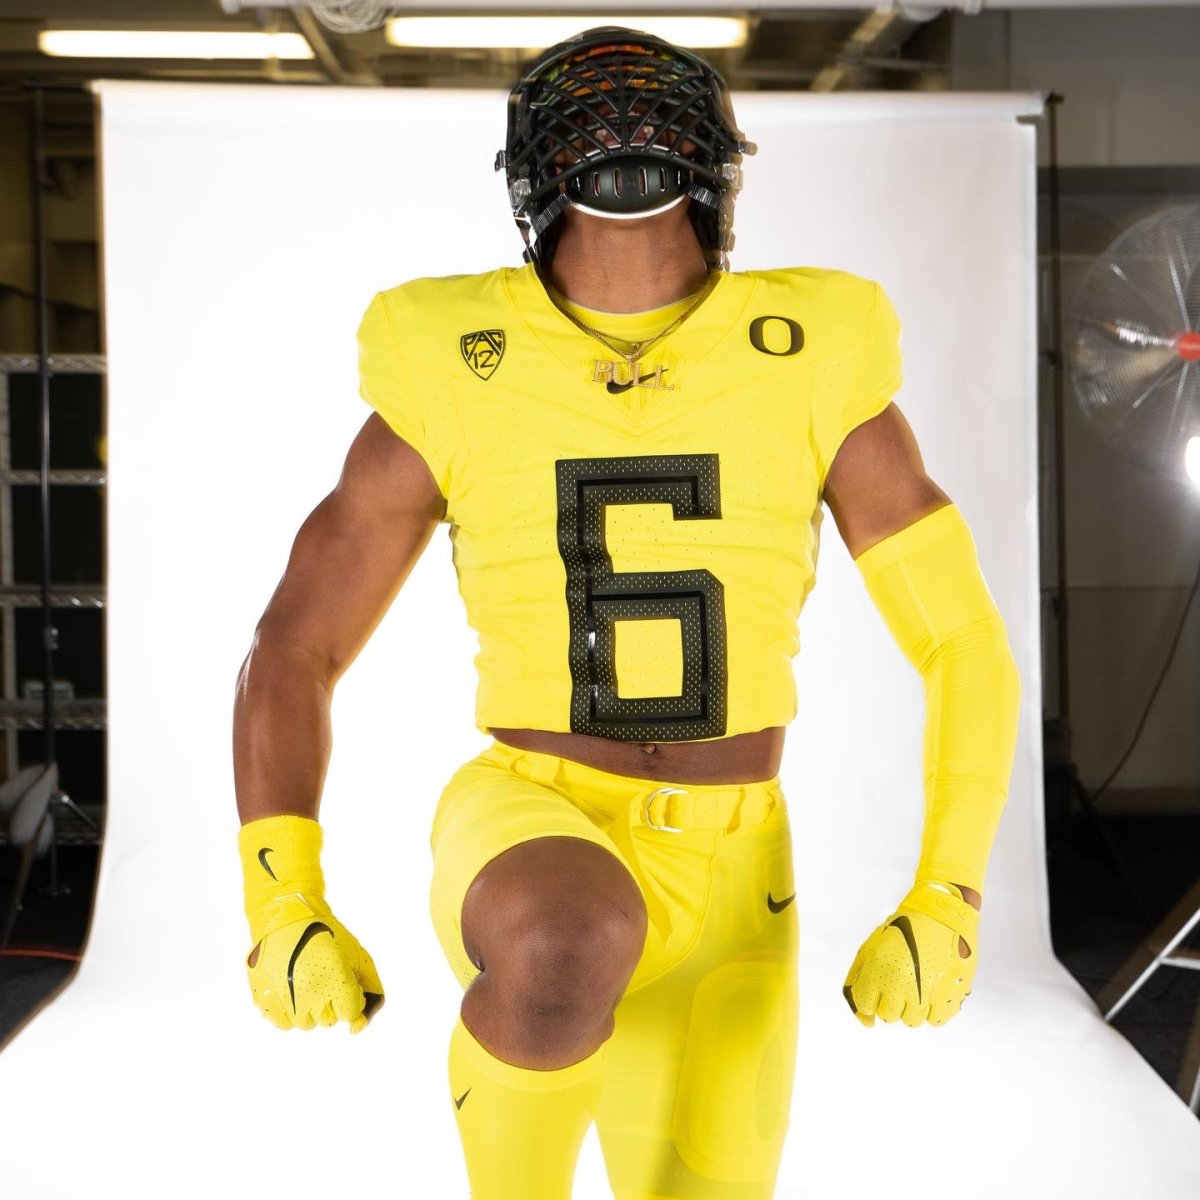 TJ Dudley yells during a photoshoot on his Oregon official visit.